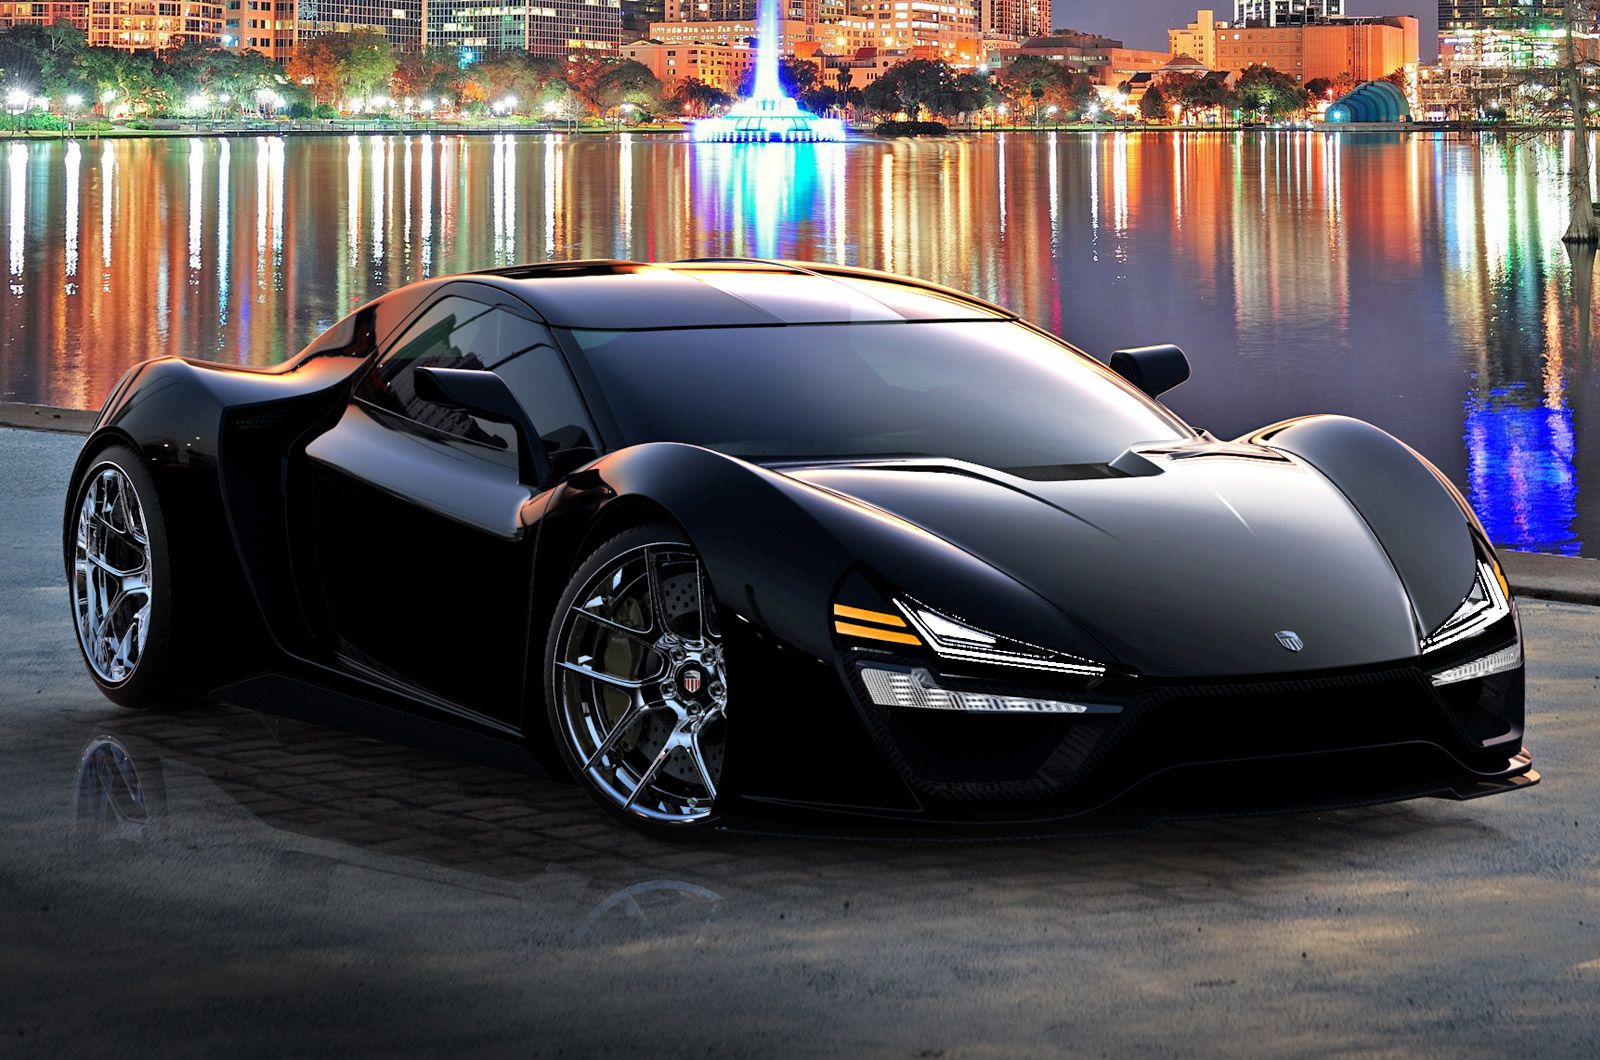 2 000 Hp Trion Nemesis To Enter Production In 2016 Super Cars Trion Cars